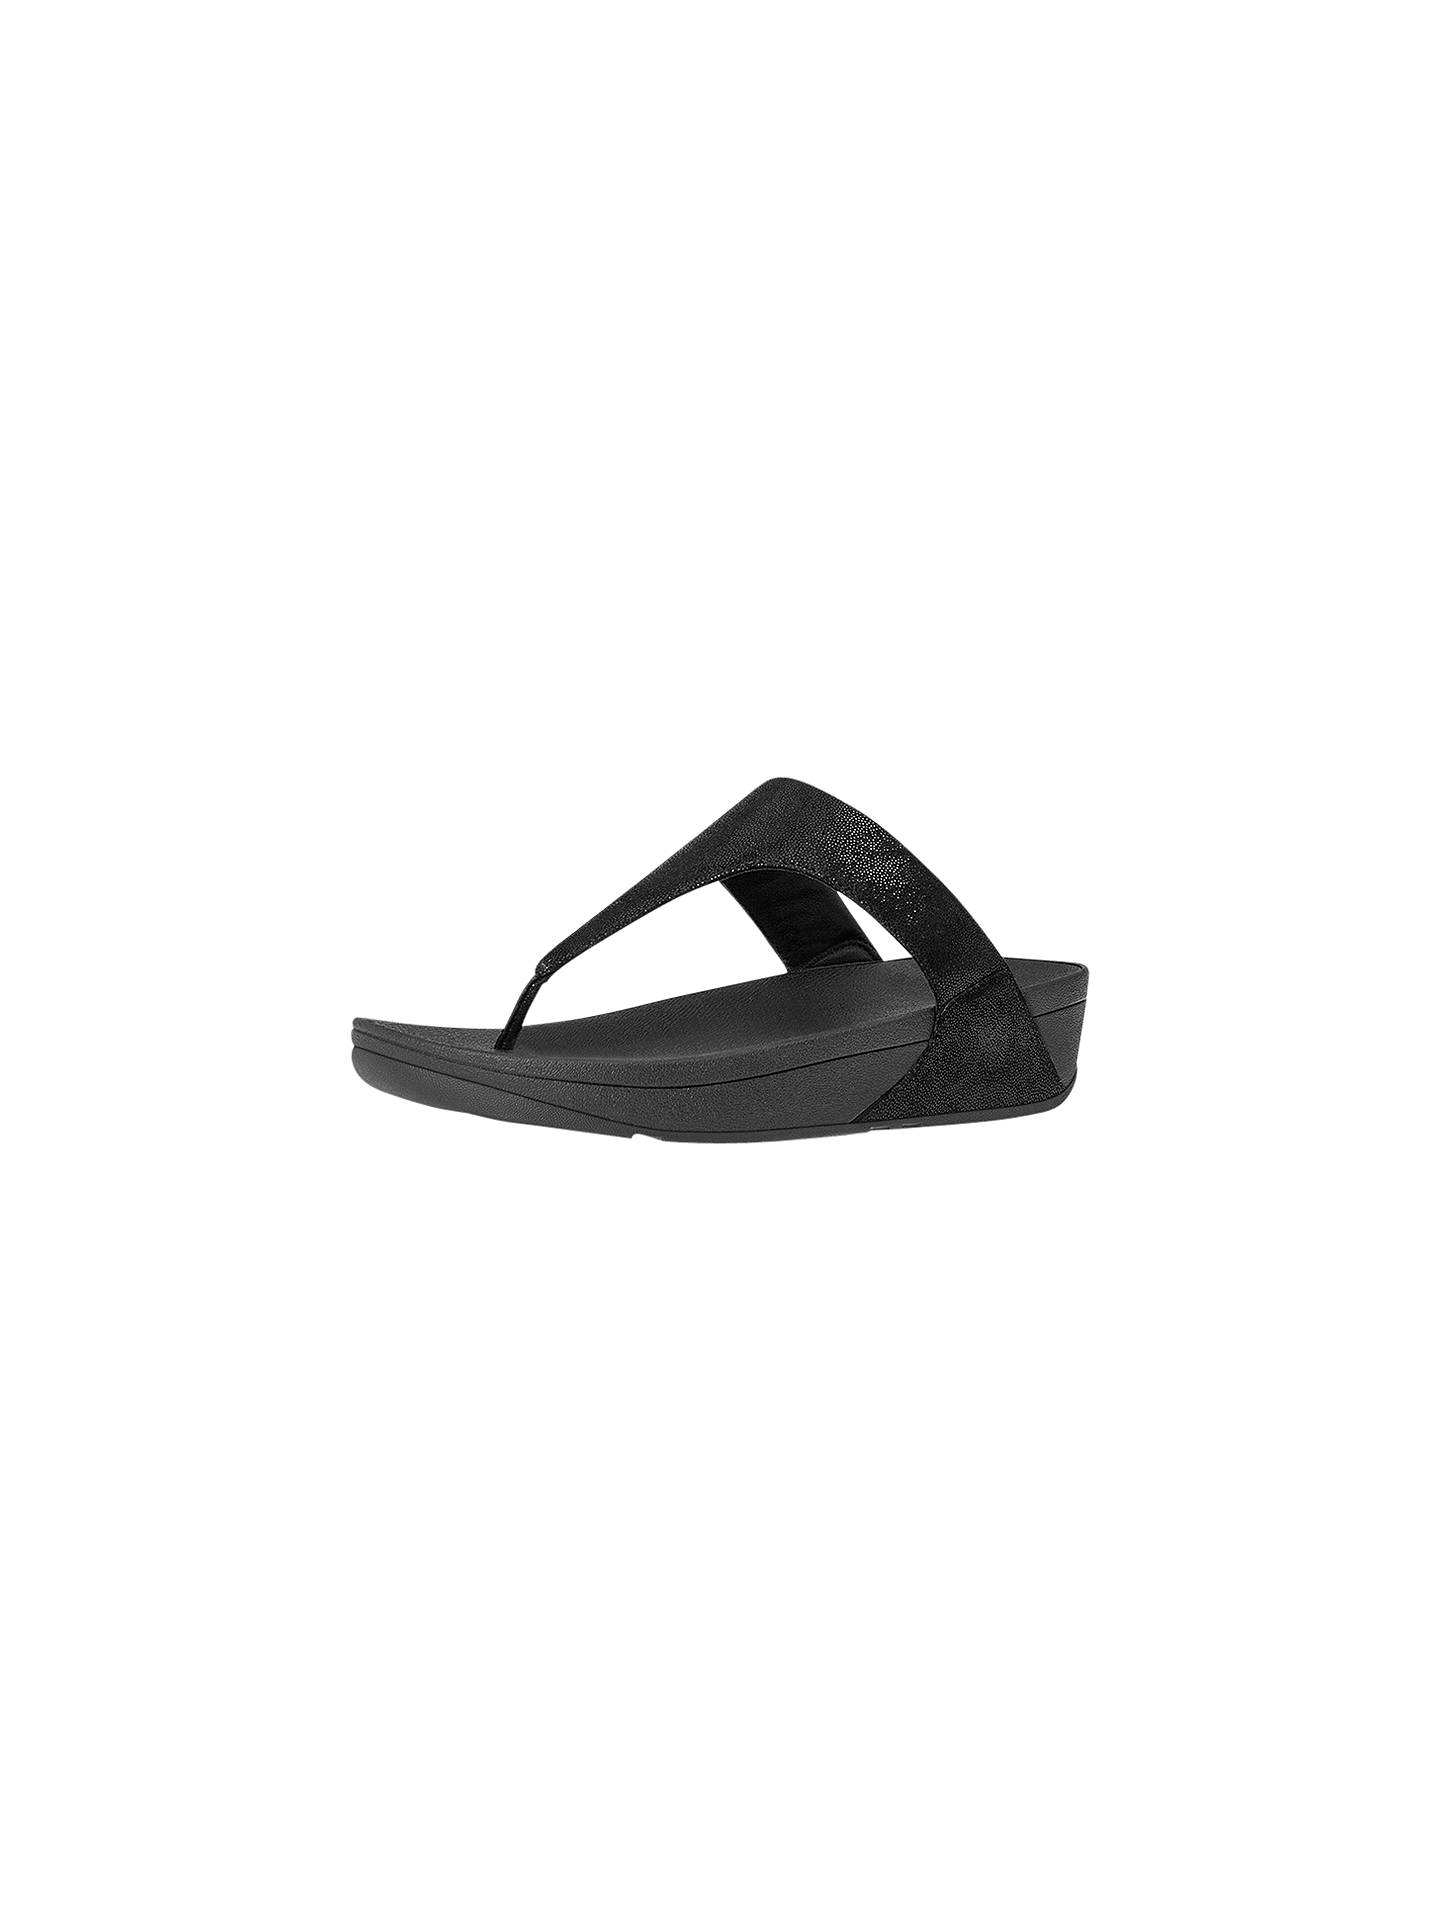 16241aee7077c FitFlop Shimmy Suede Toe Thong Sandals at John Lewis   Partners